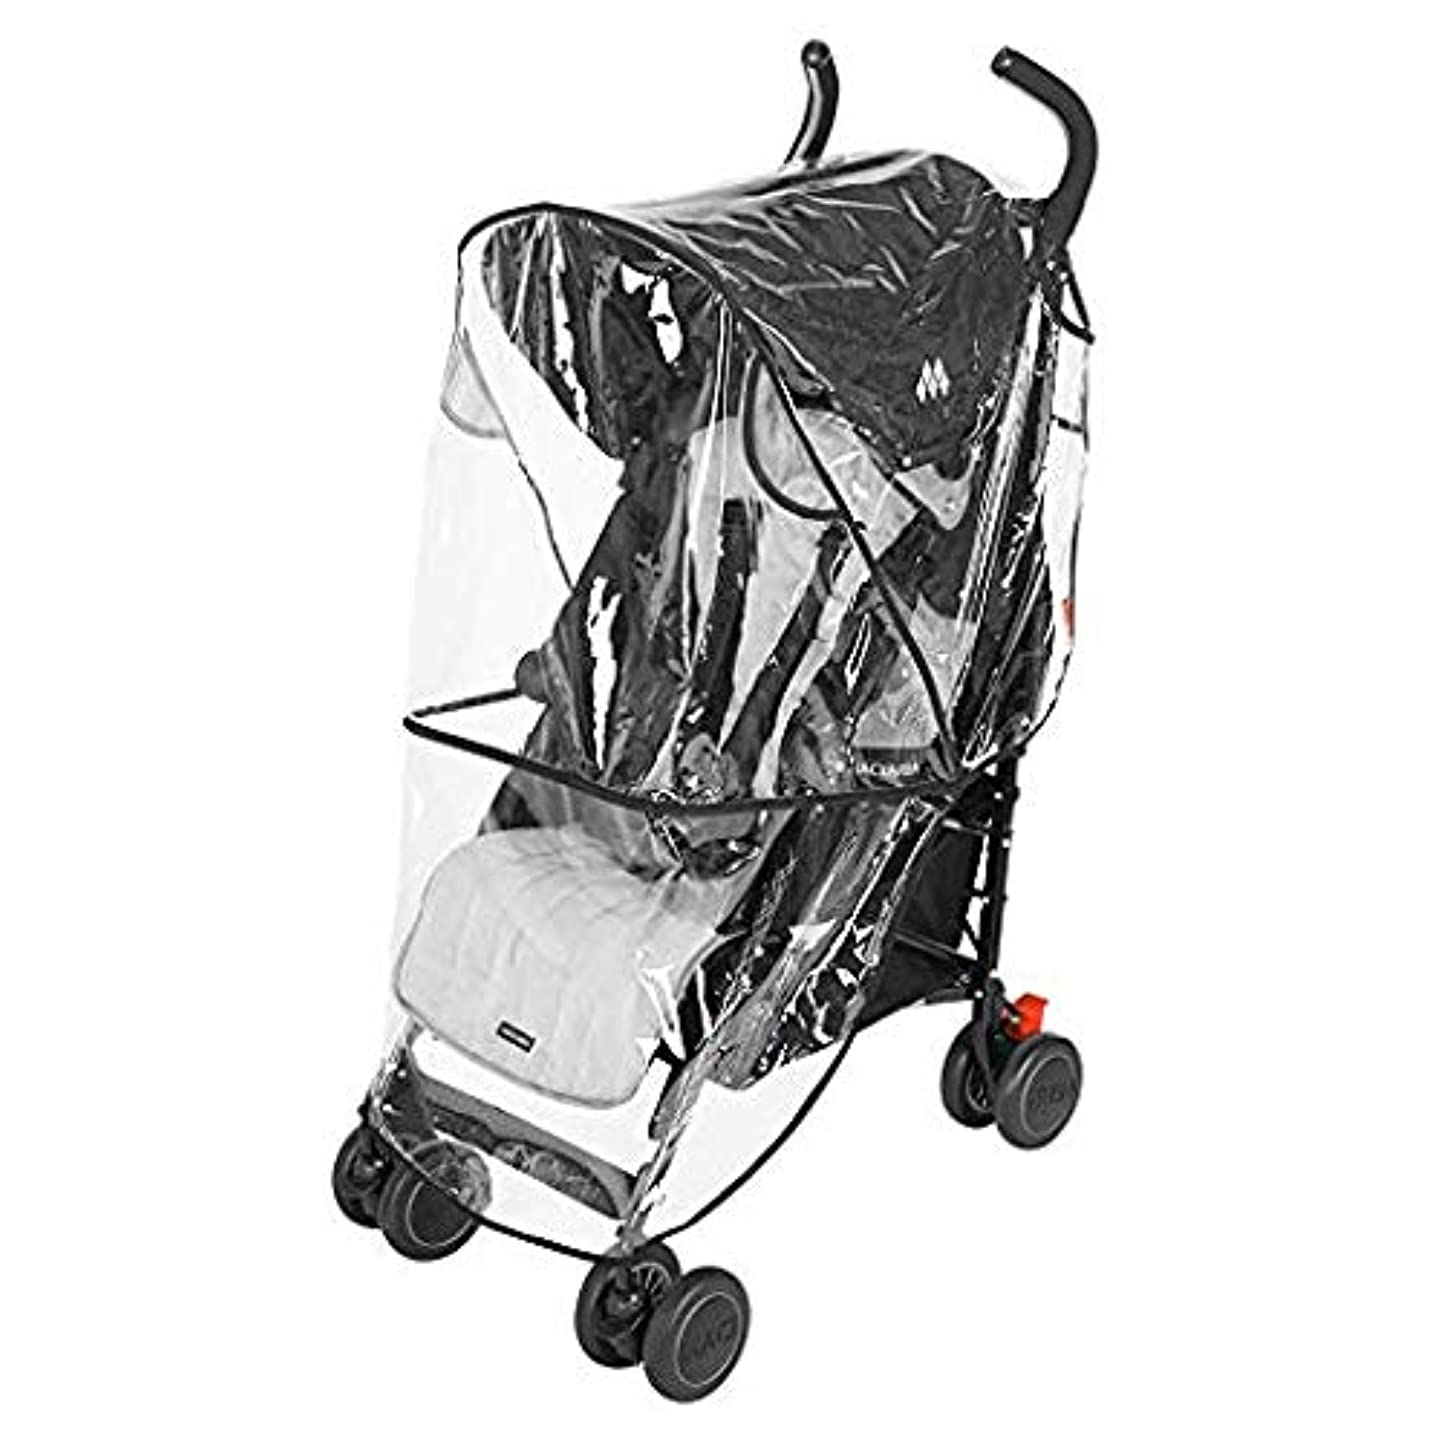 Stroller and Car Seat Replacement Parts/Accessories to fit Chicco Products for Baby, Toddlers and Children (Rain Cover)